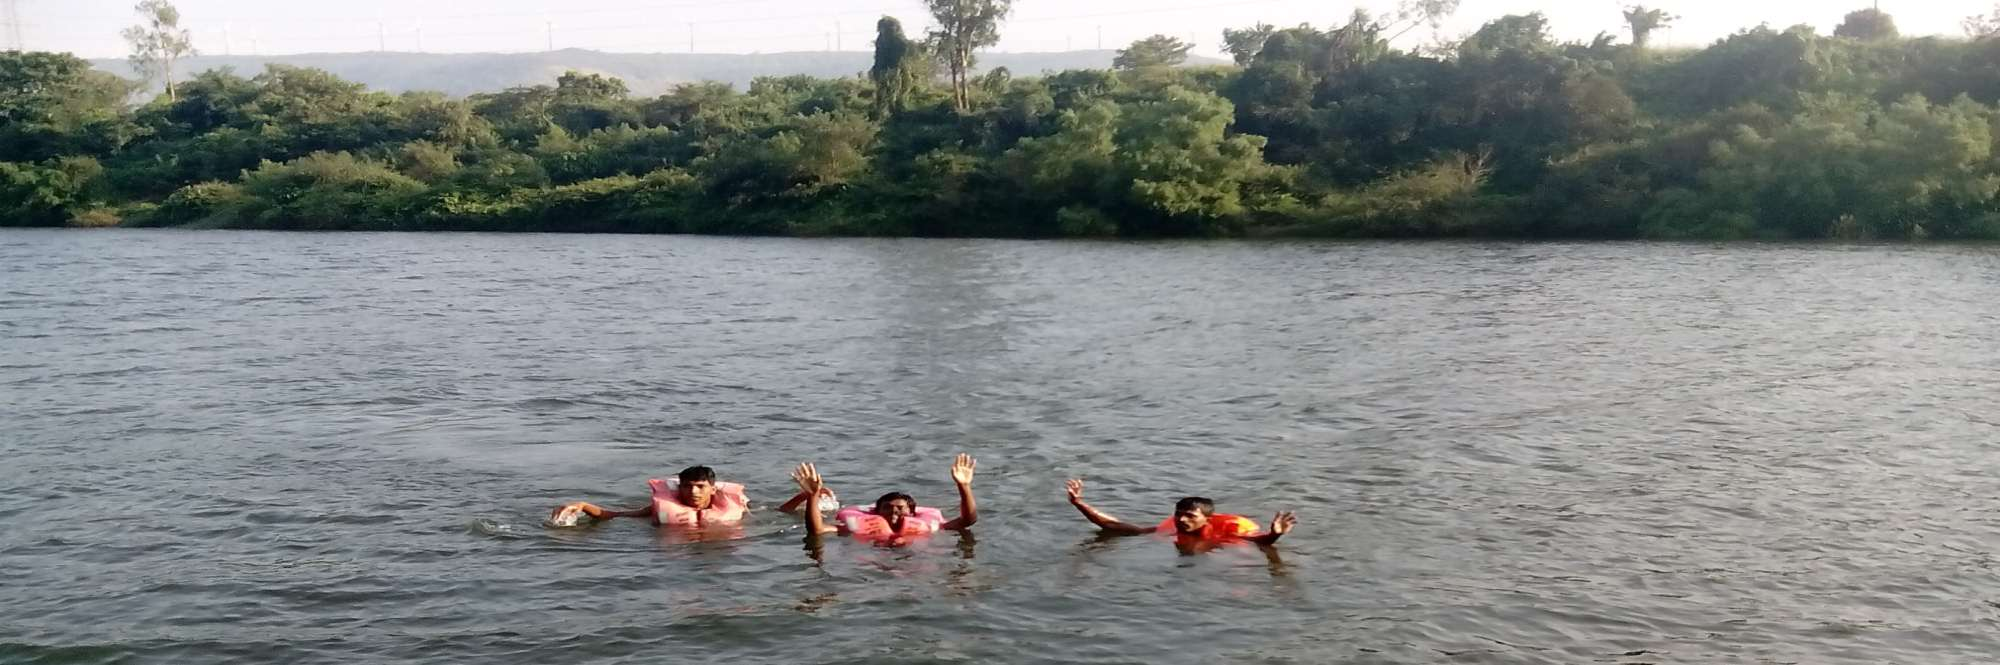 Fishing & Swimming in the Koyna River